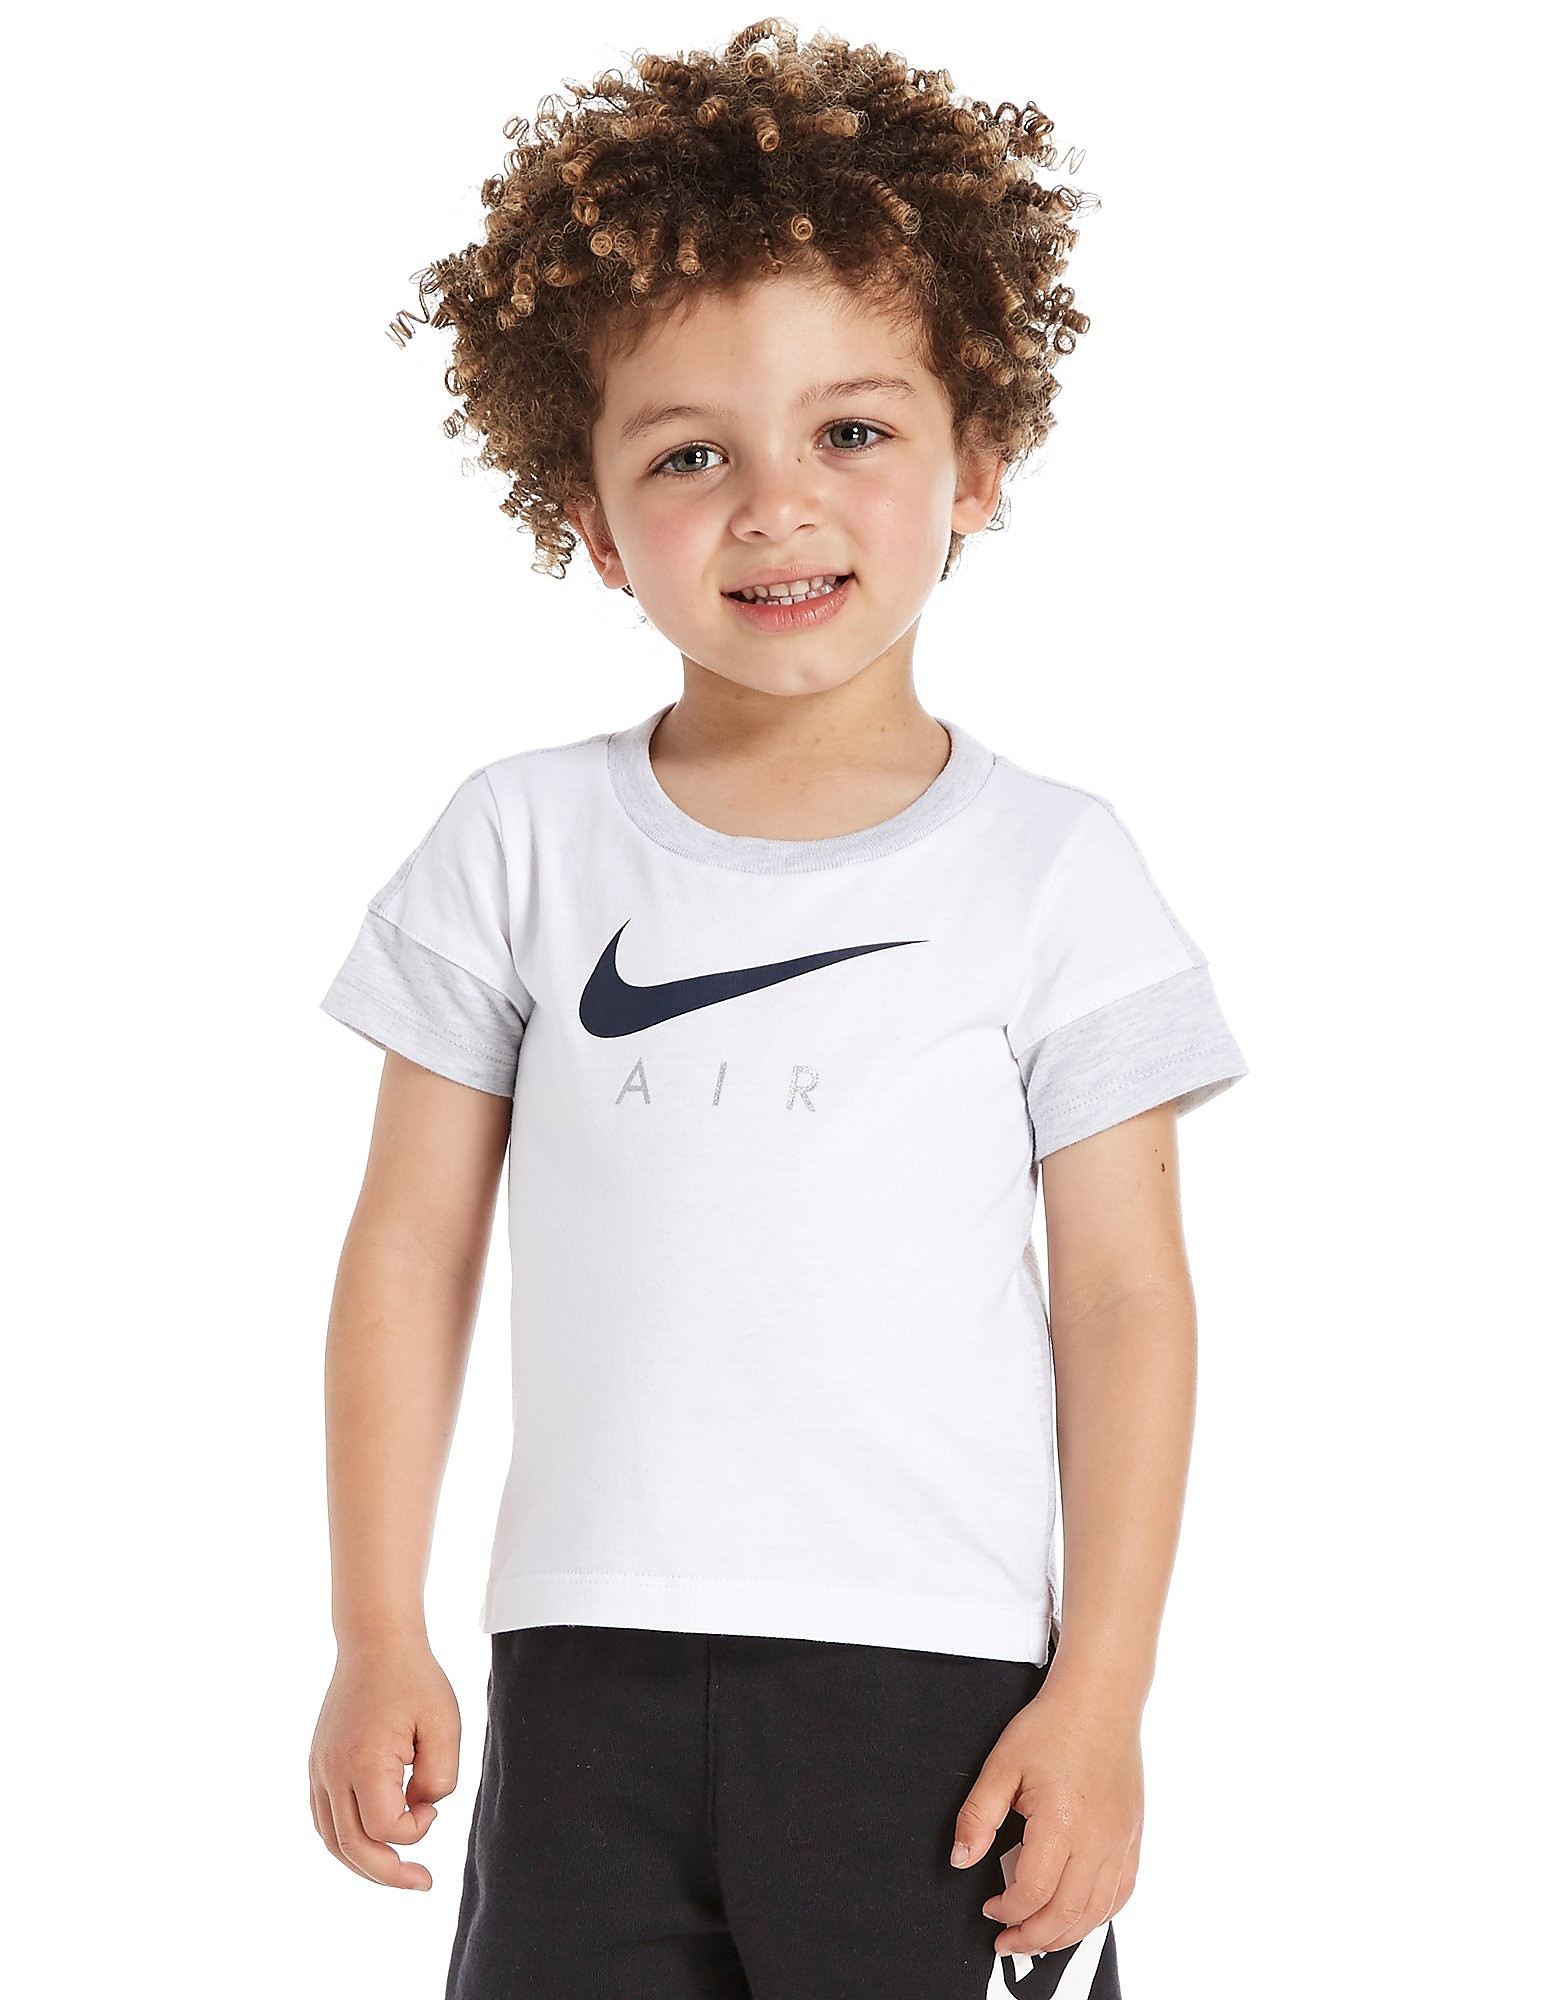 Nike Air T-Shirt Infant